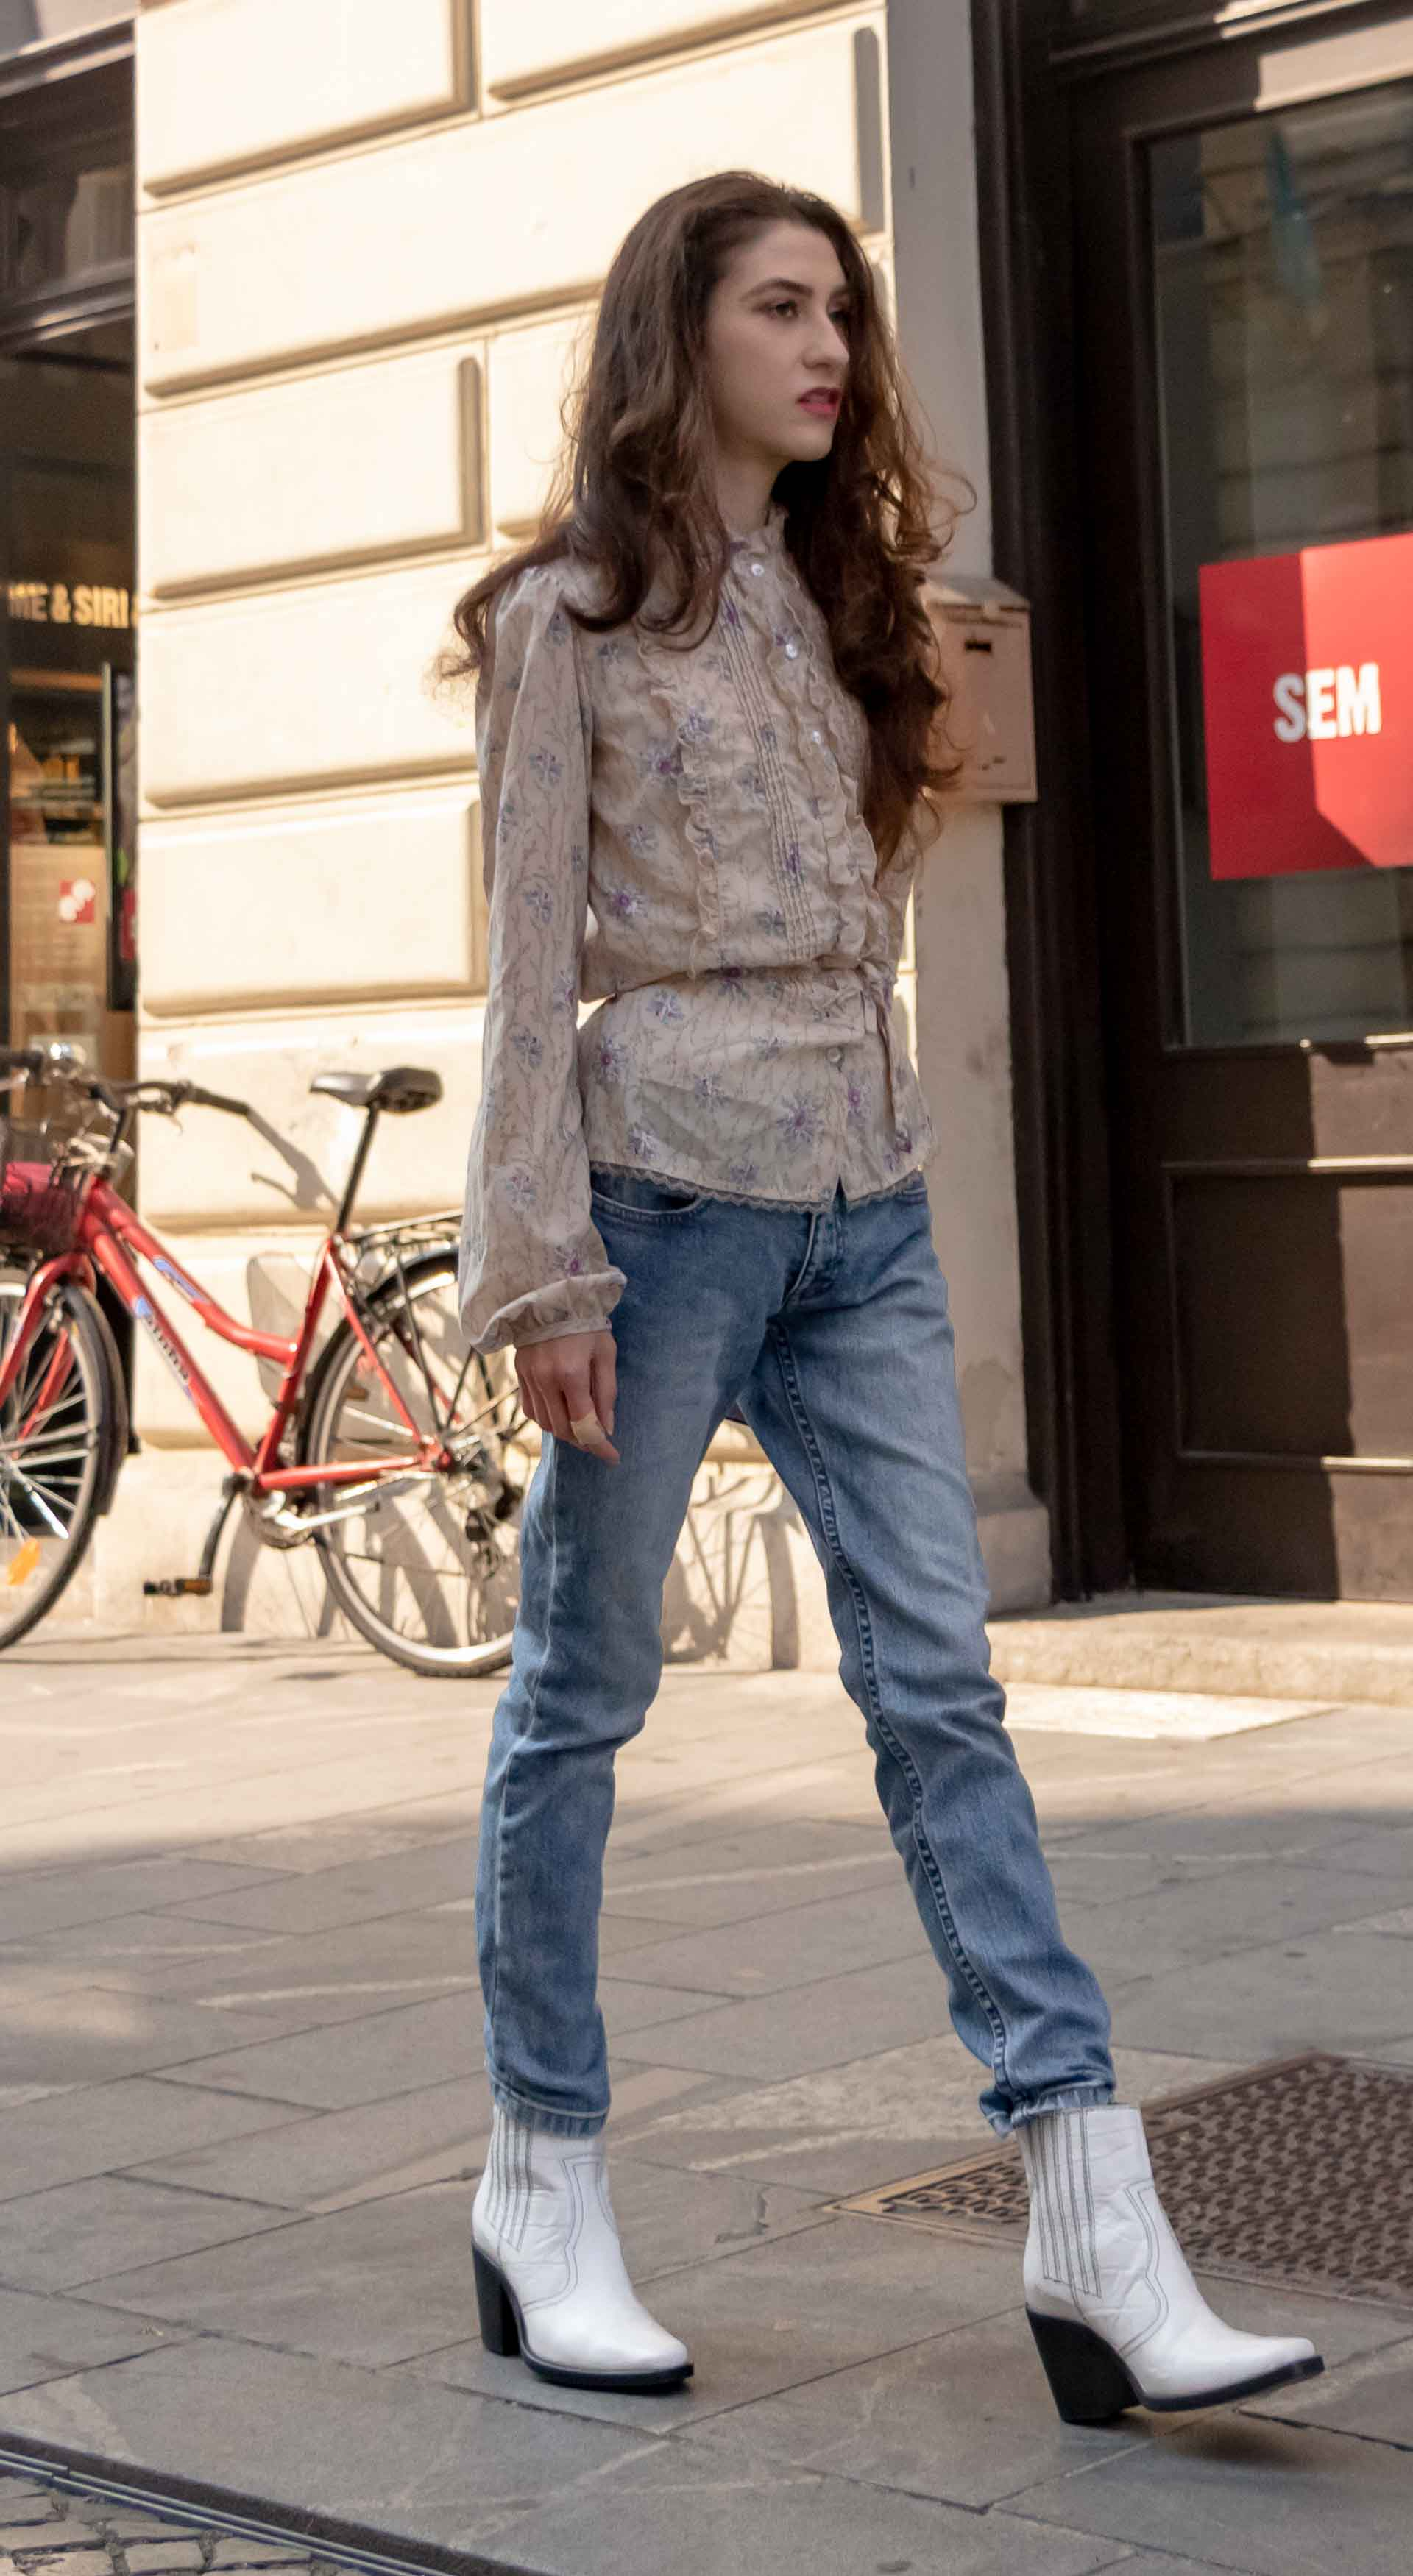 Beautiful Slovenian Fashion Blogger Veronika Lipar of Brunette from Wall dressed in white Ganni Western boots, floral long sleeved Prairie shirt, A.P.C. blue jeans walking on the street in fall in Ljubljana